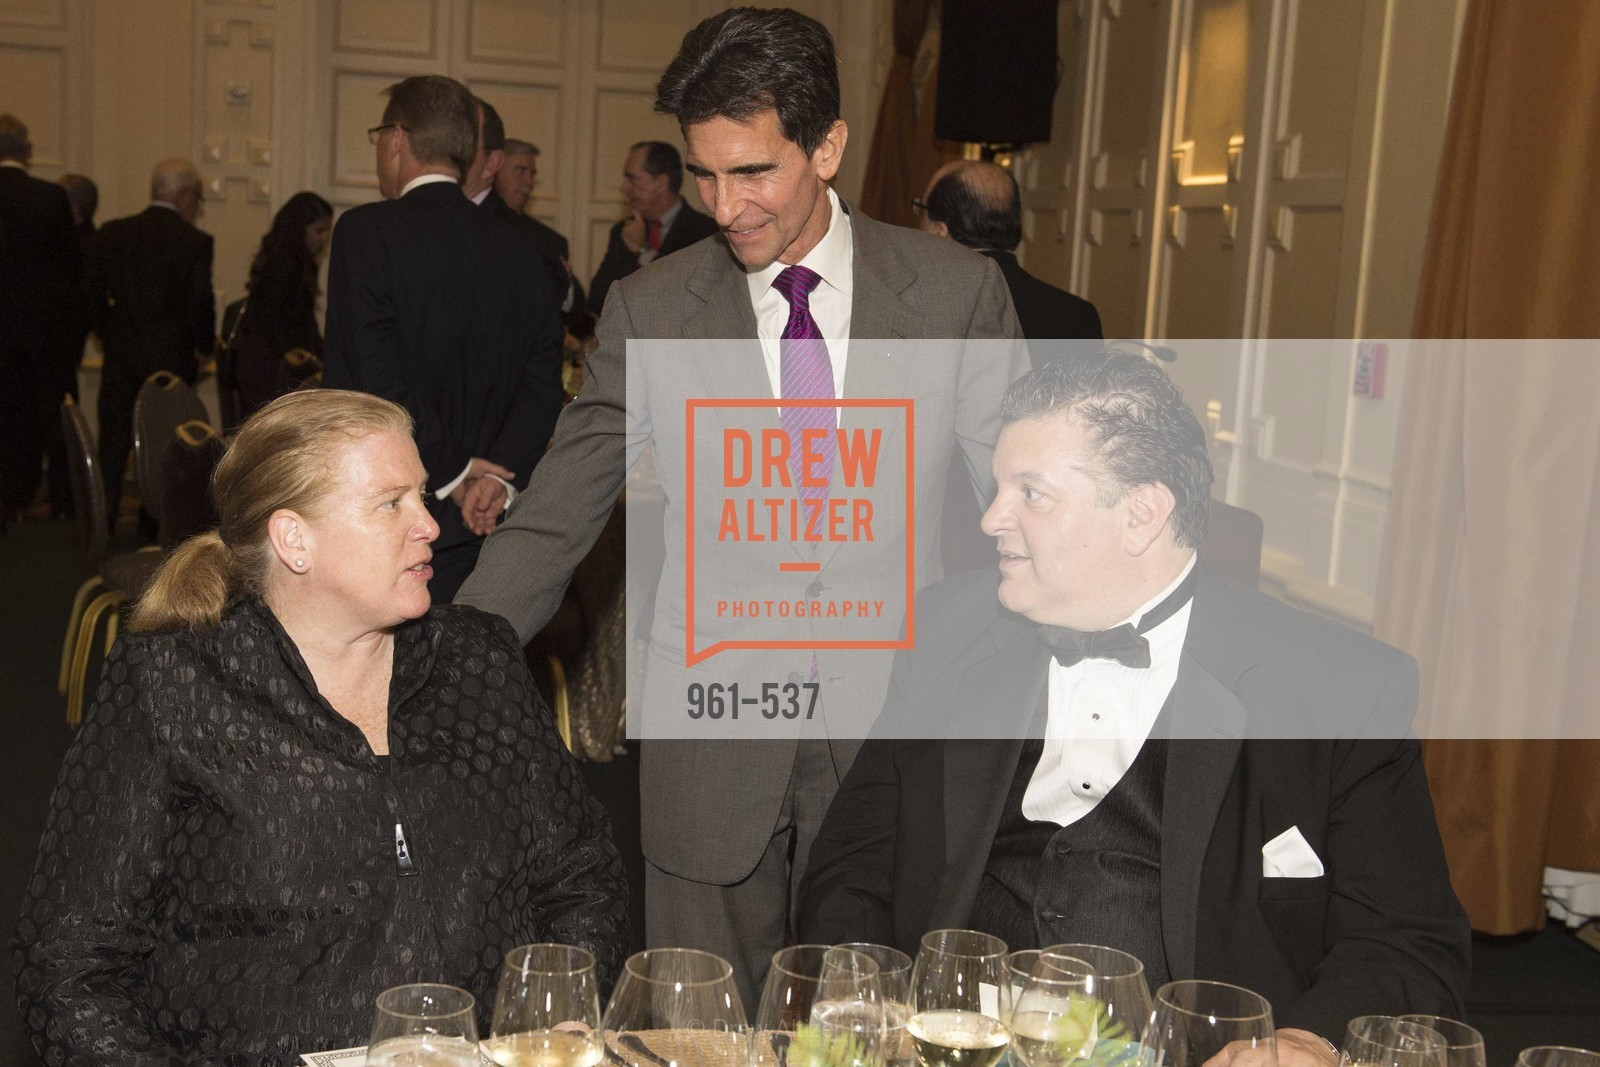 Joanne Hayes-White, Mark Leno, John Konstin, TOP OF THE MARK'S 75TH Anniversary Party, US, November 7th, 2014,Drew Altizer, Drew Altizer Photography, full-service event agency, private events, San Francisco photographer, photographer California